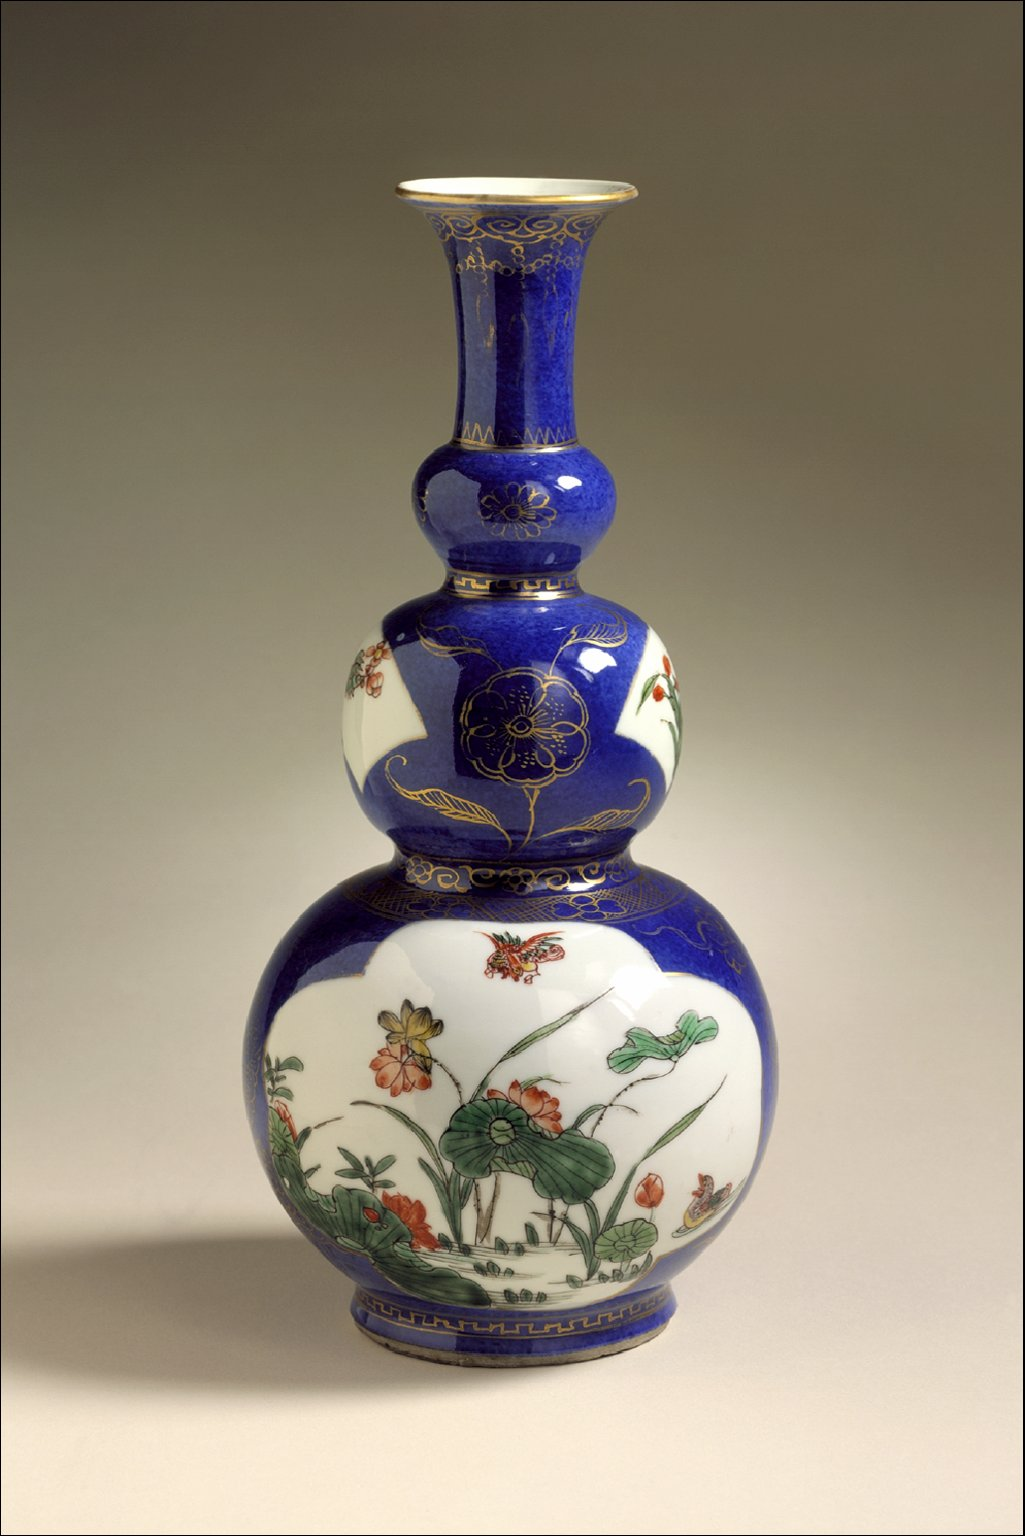 Vase (Ping) in the Form of a Gourd with Panels of Flowers and Birds